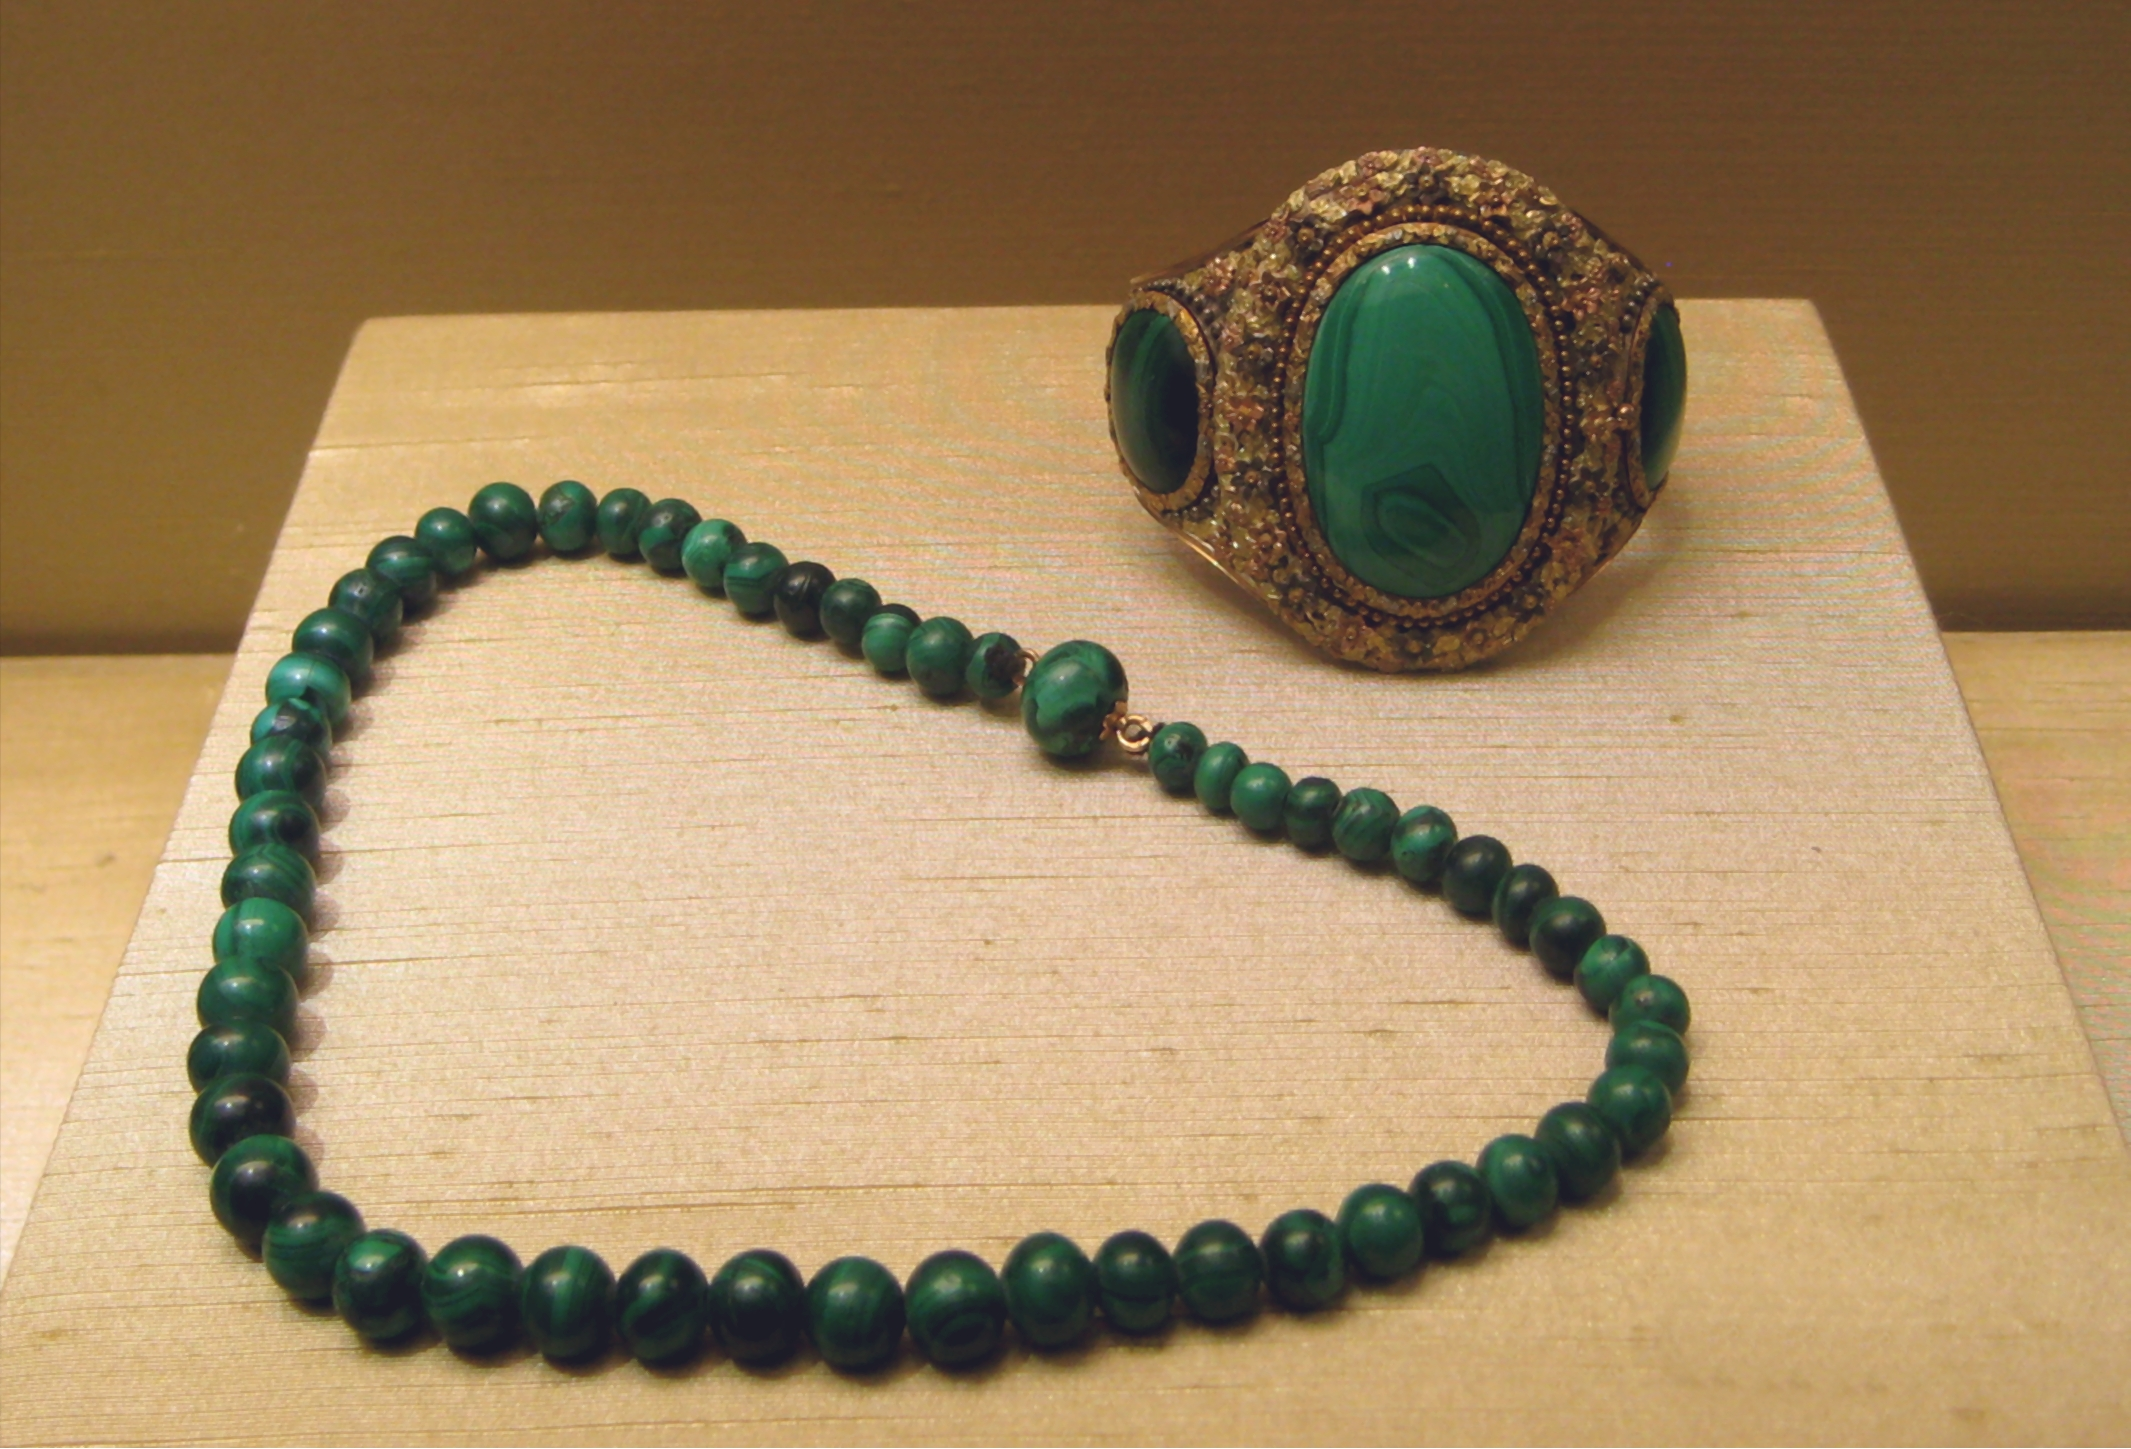 Malachite is also used in crystal healing to help with digestion, heal muscle injuries, make labor and childbirth easier and help with heart problems. -- Malachite Healing Properties